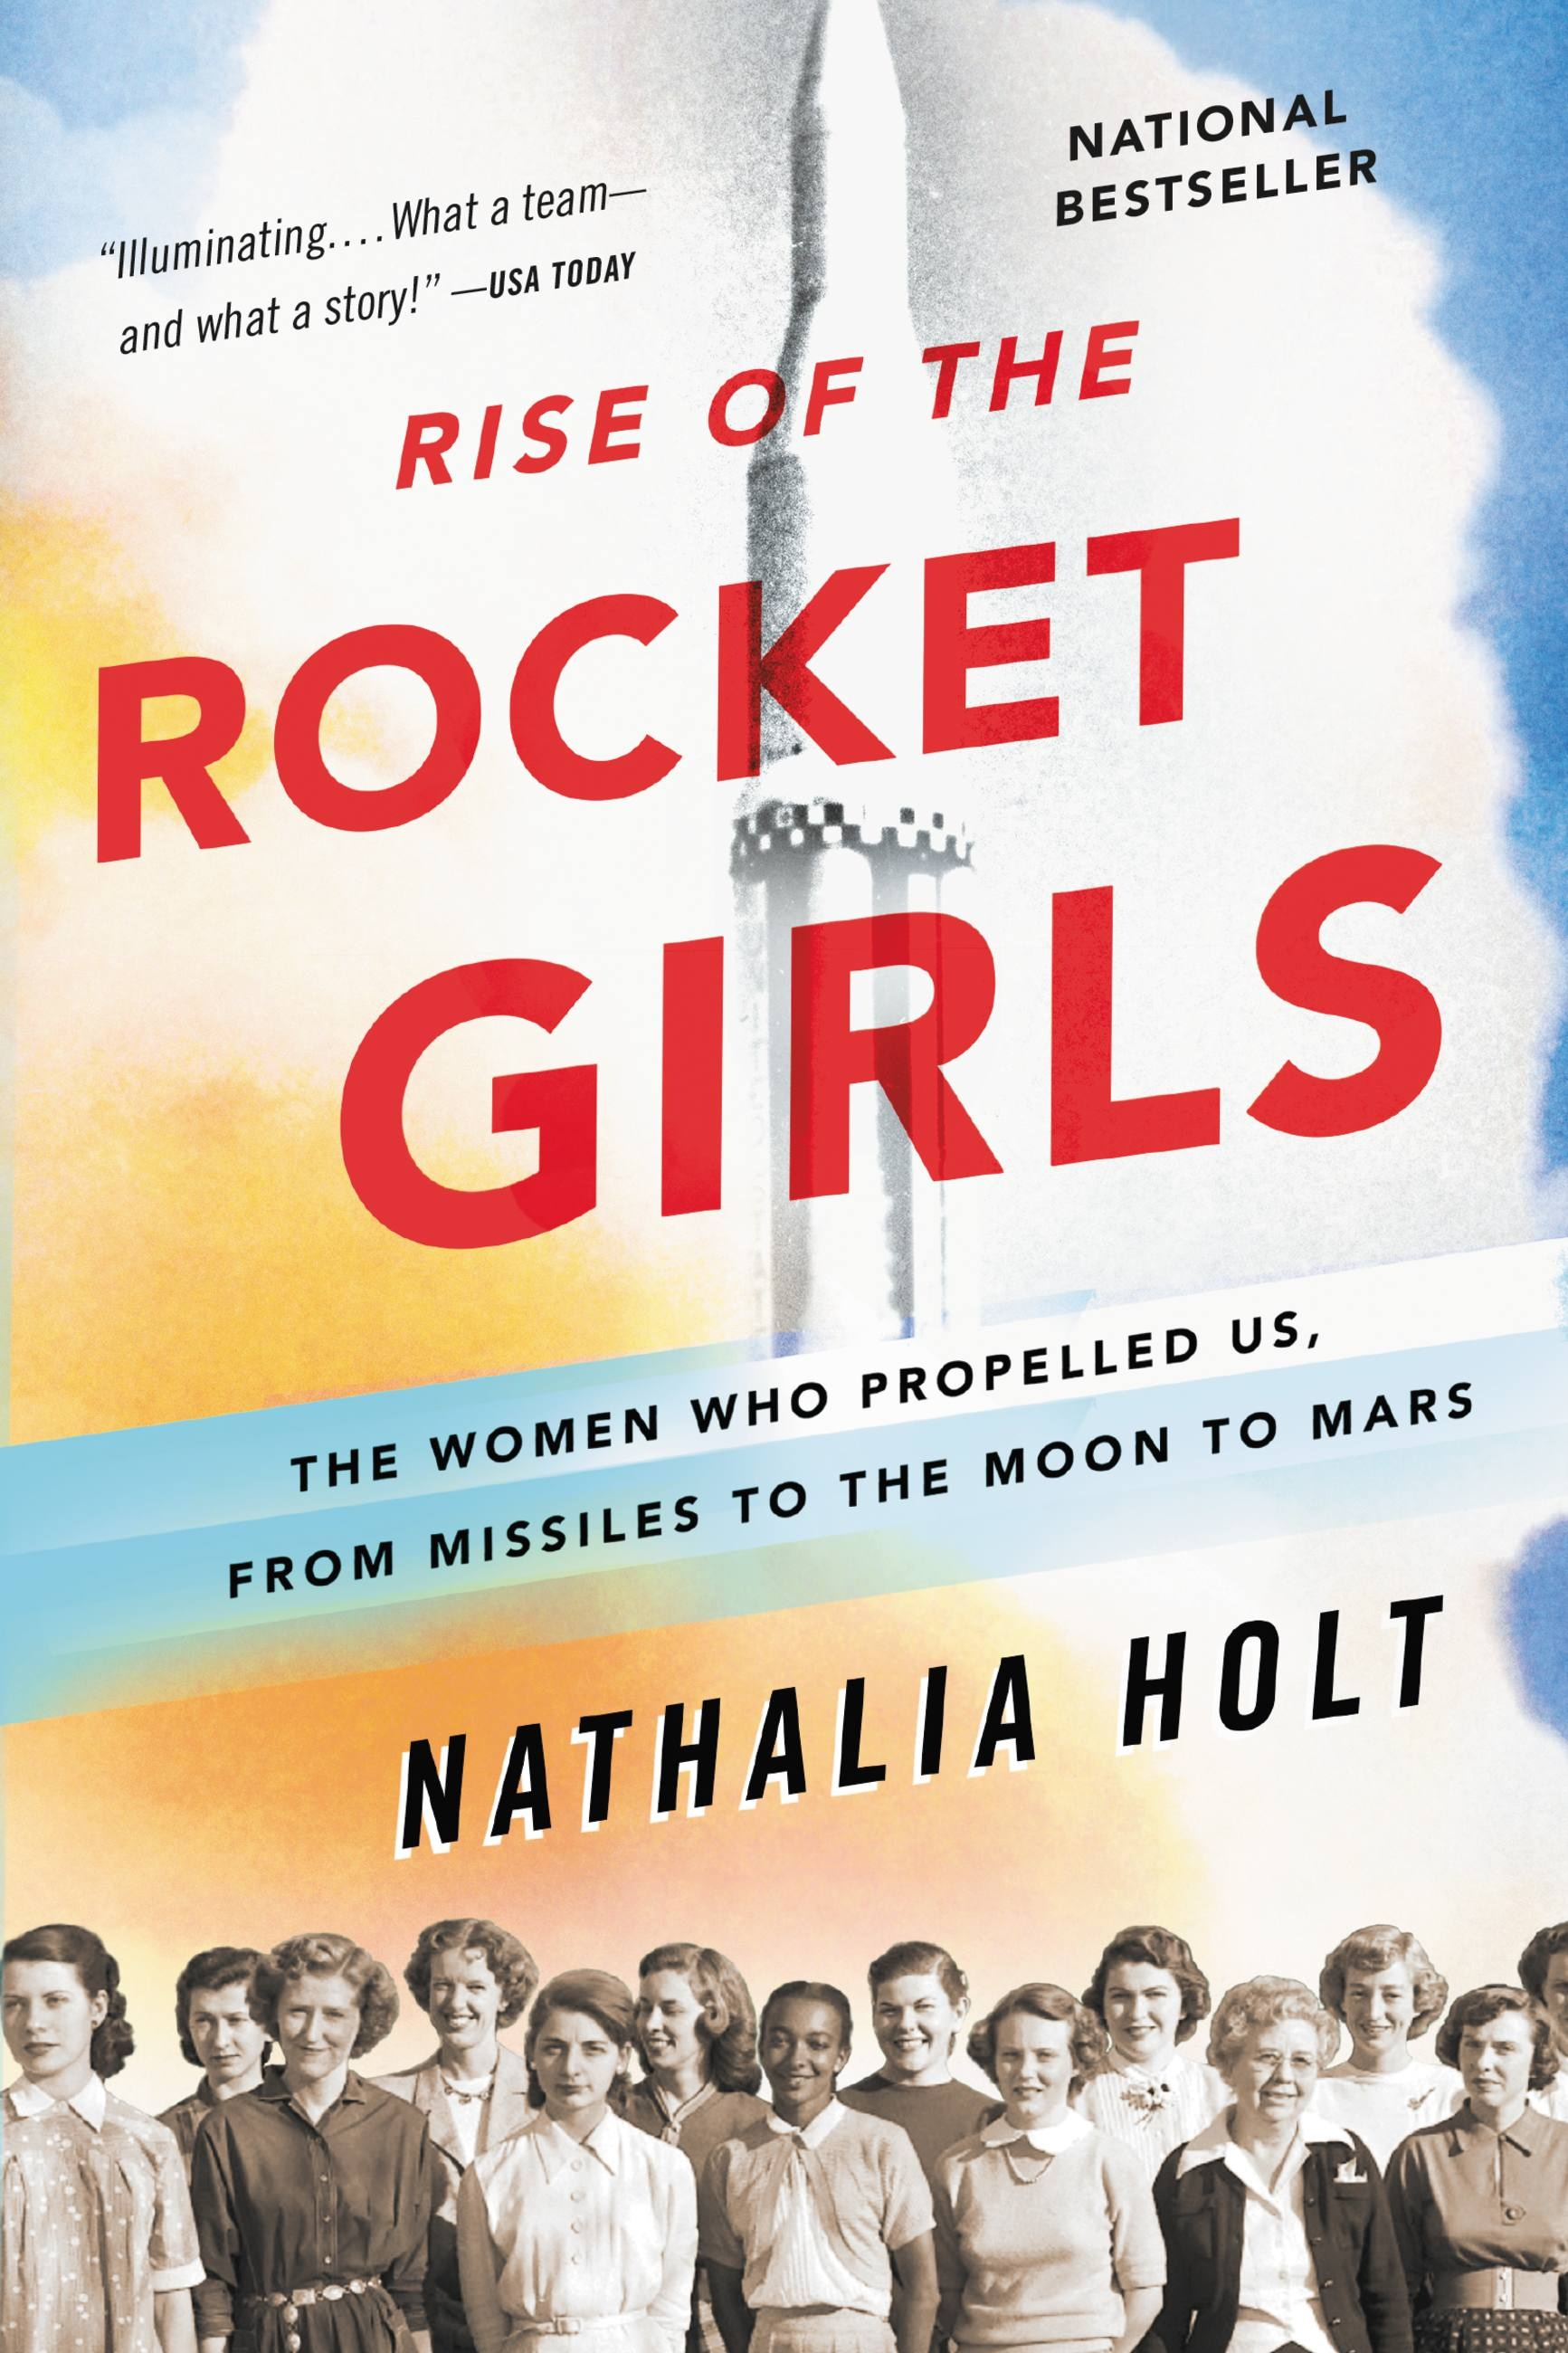 Rise of the Rocket Girls by Nathalia Holt